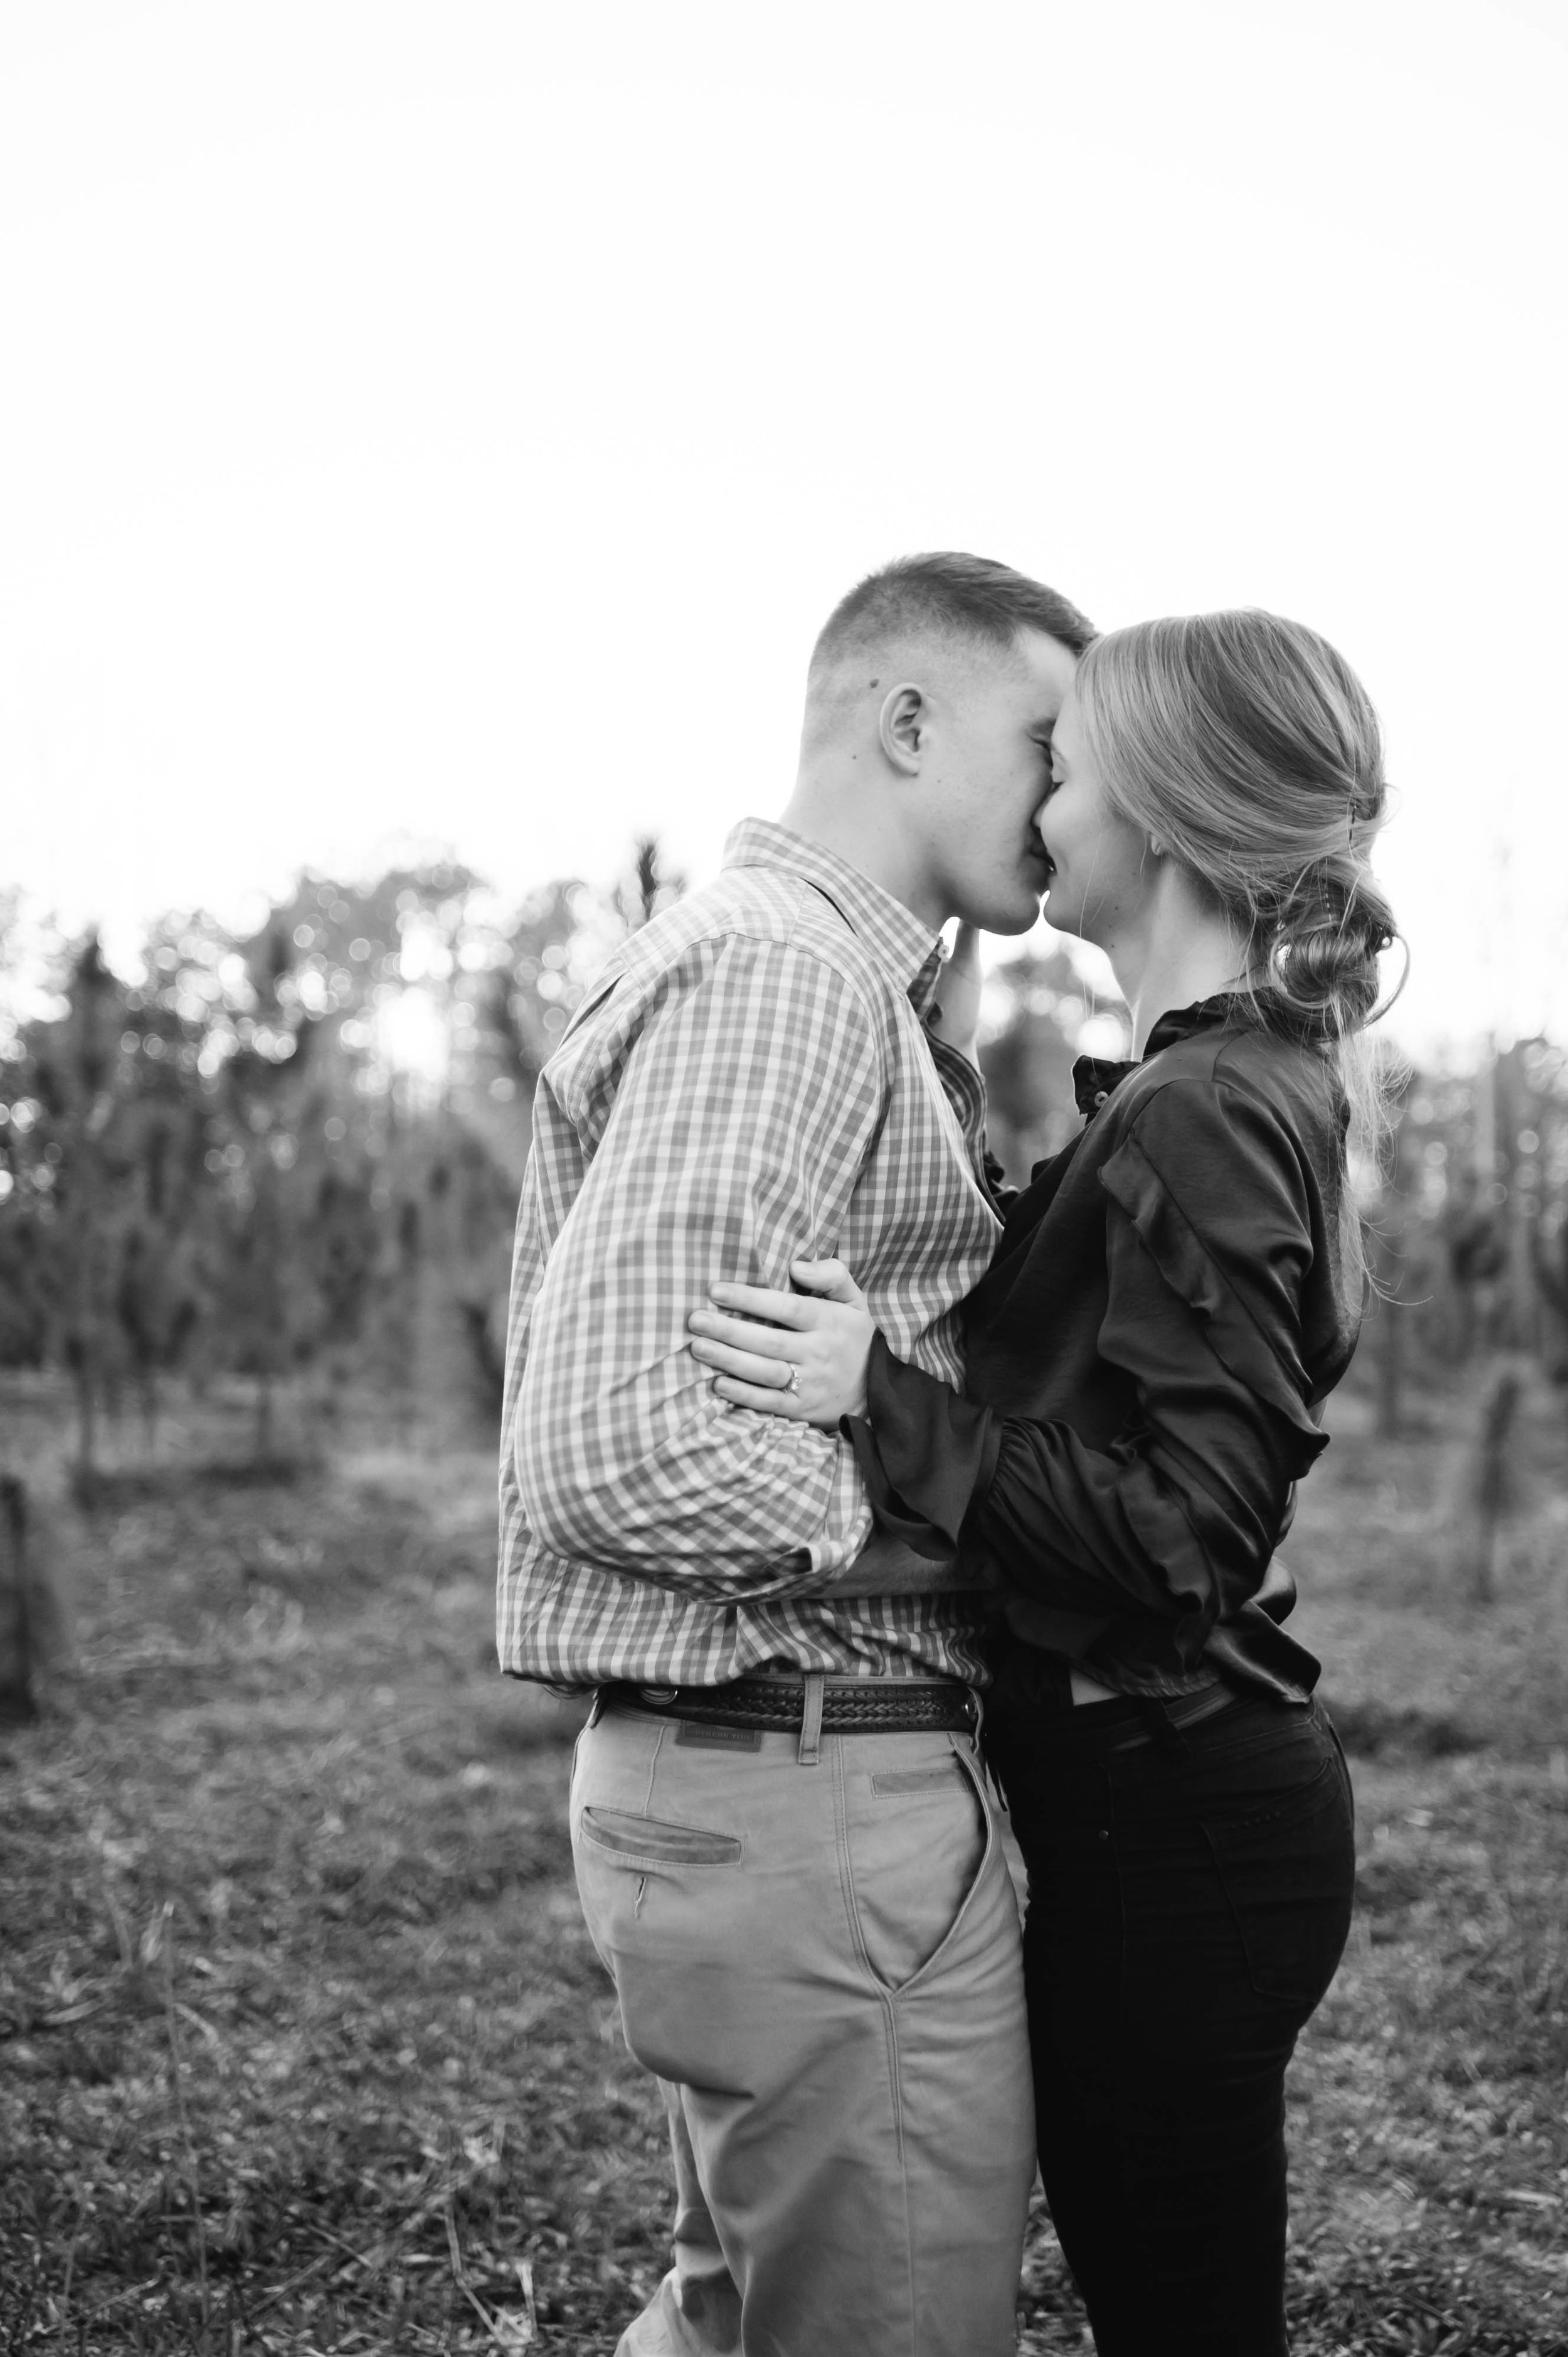 Kathryn & Jacb Engagement Session (70 of 79).jpg